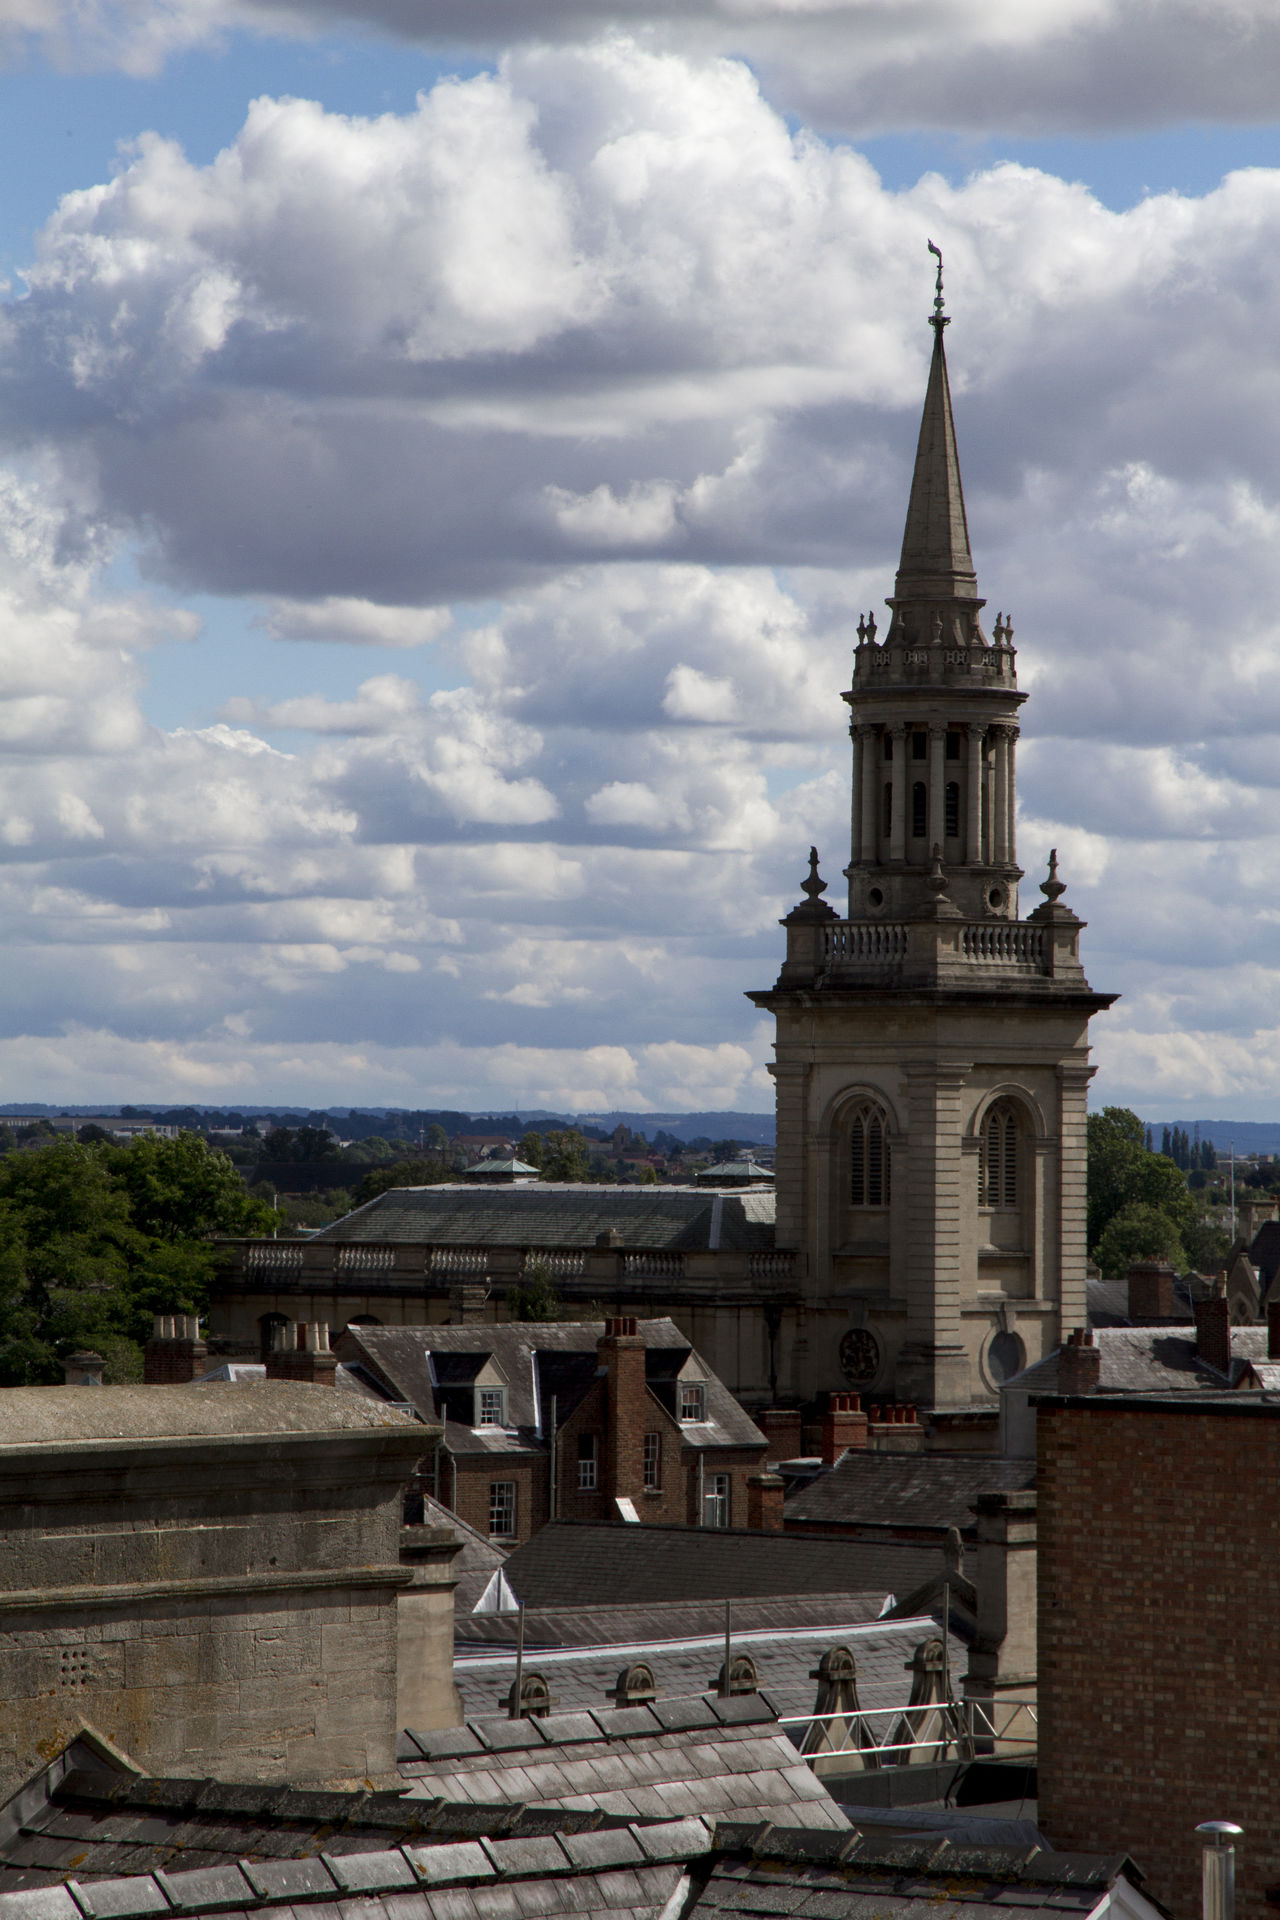 Architecture Built Structure Church Cloud Cloud - Sky Cloudy Day No People Outdoors Overcast Roofs Roofs And Towers Sky Tourism Tower Travel Destinations Weather Spire  Rooftop Birds Eye View Town Church Tower From St Michael's